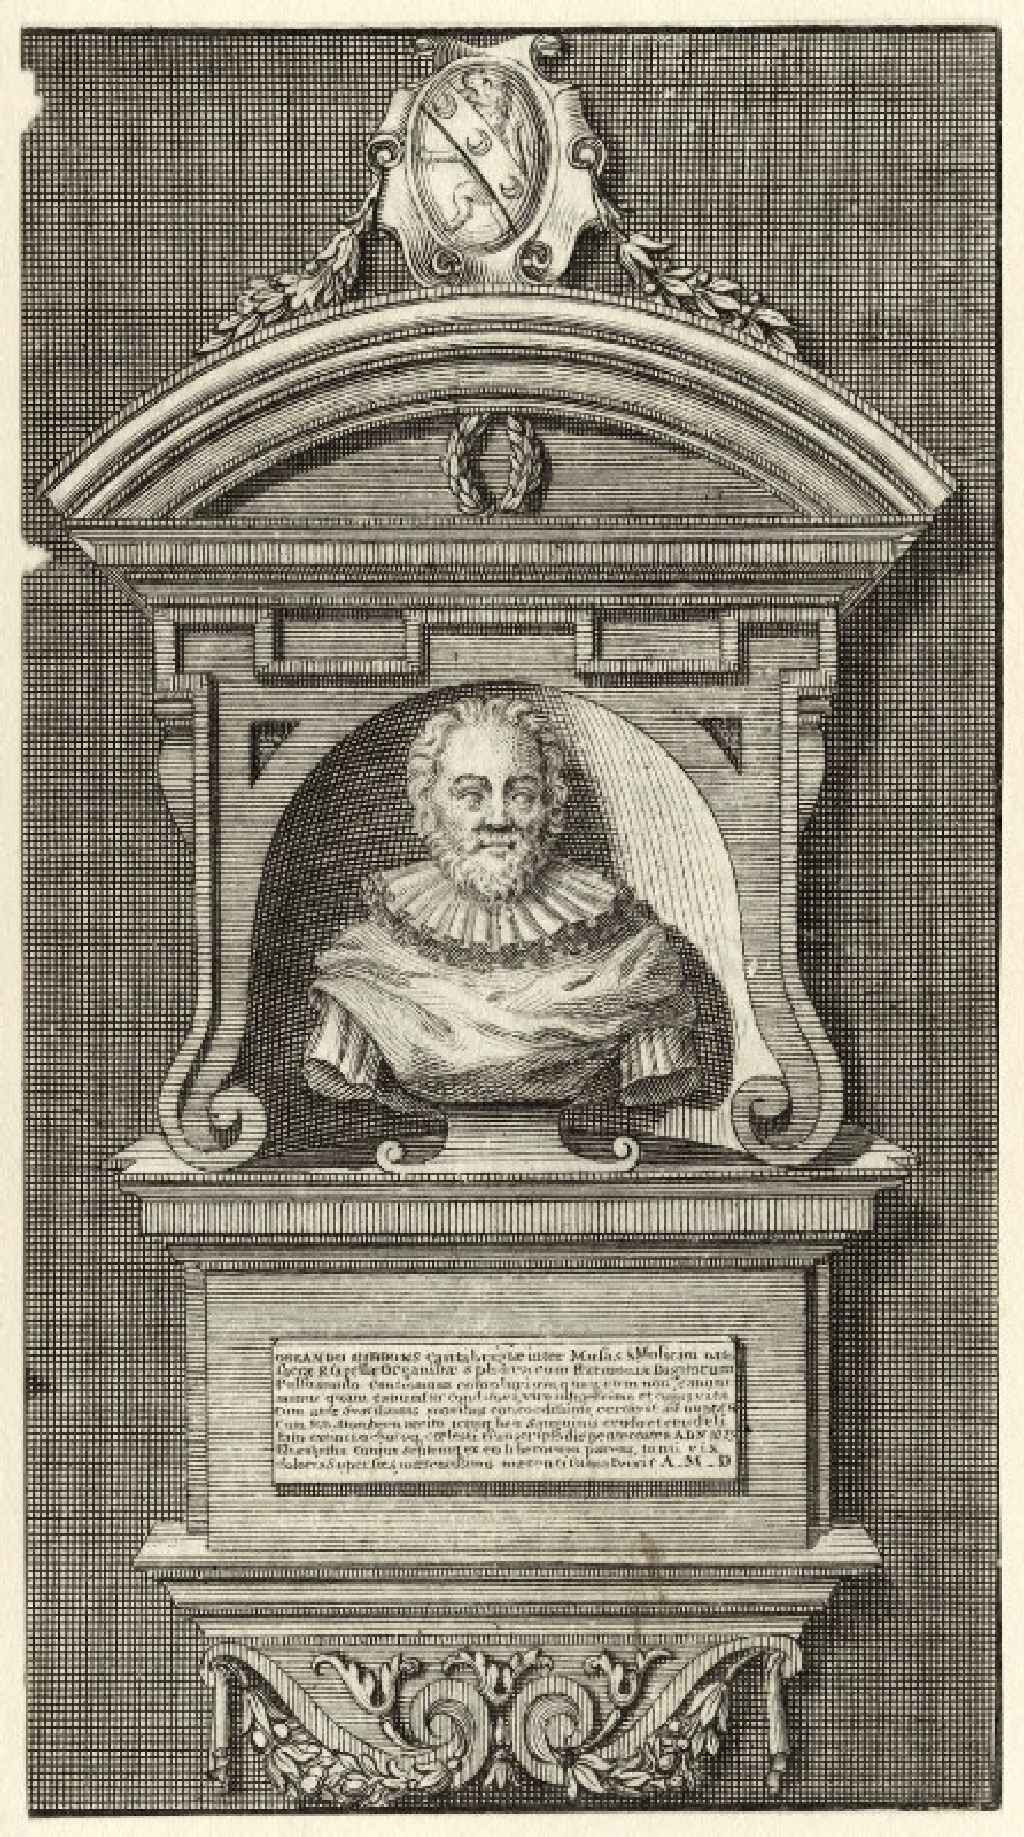 Monument to Orlando Gibbons 18th century, artist unknown; National Portrait Gallery, United Kingdom Used with permission.